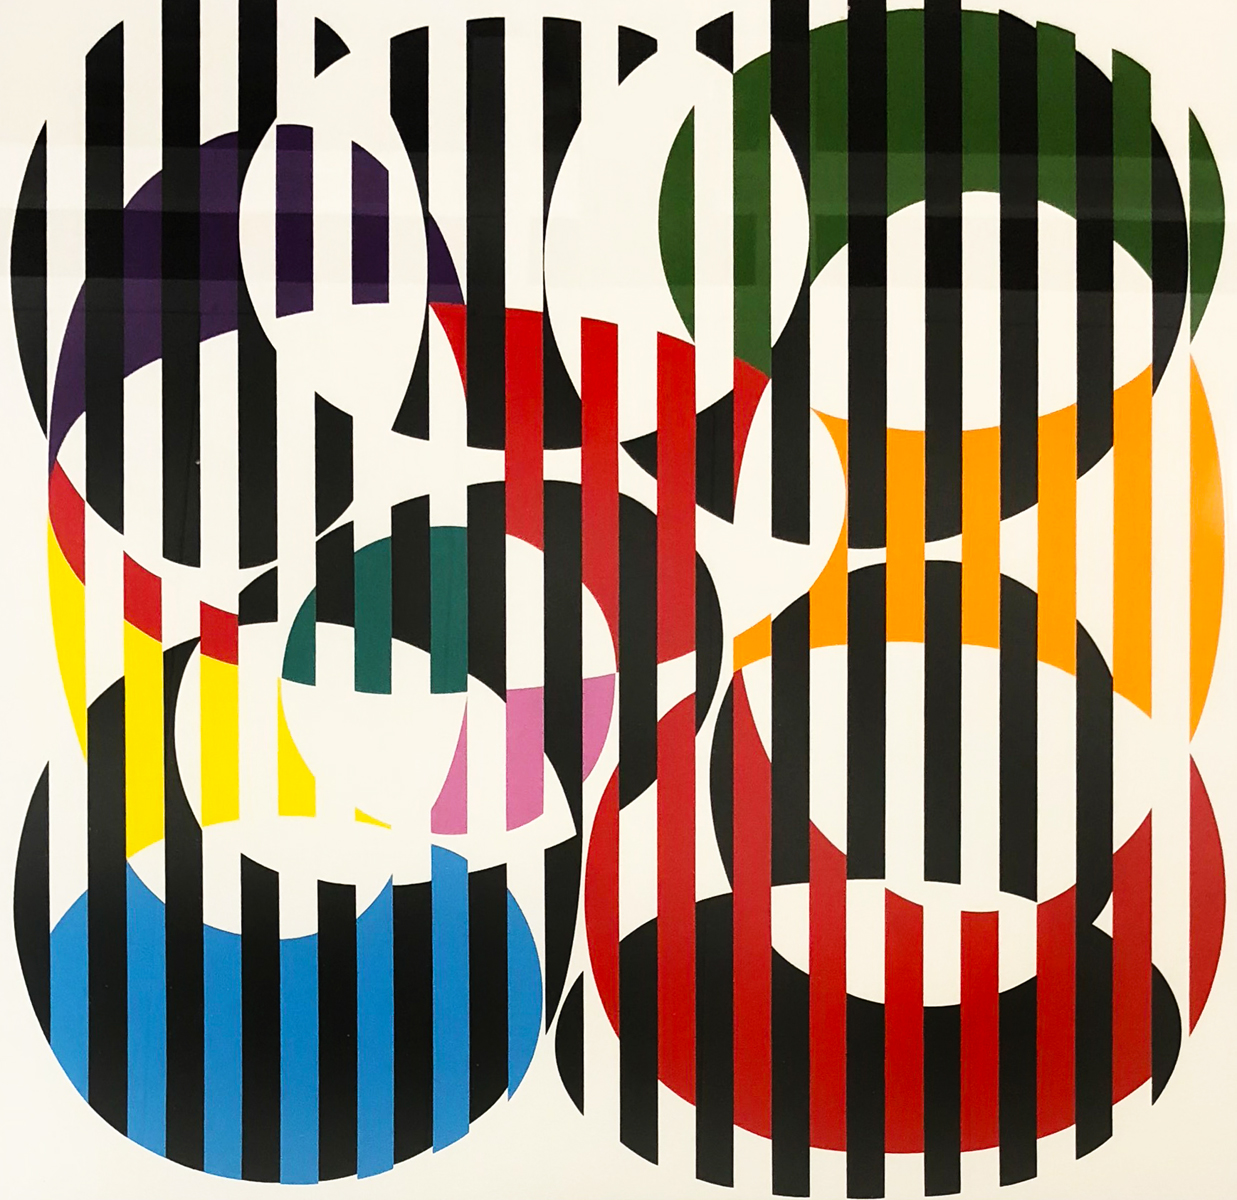 End to End 1971 by Yaacov Agam